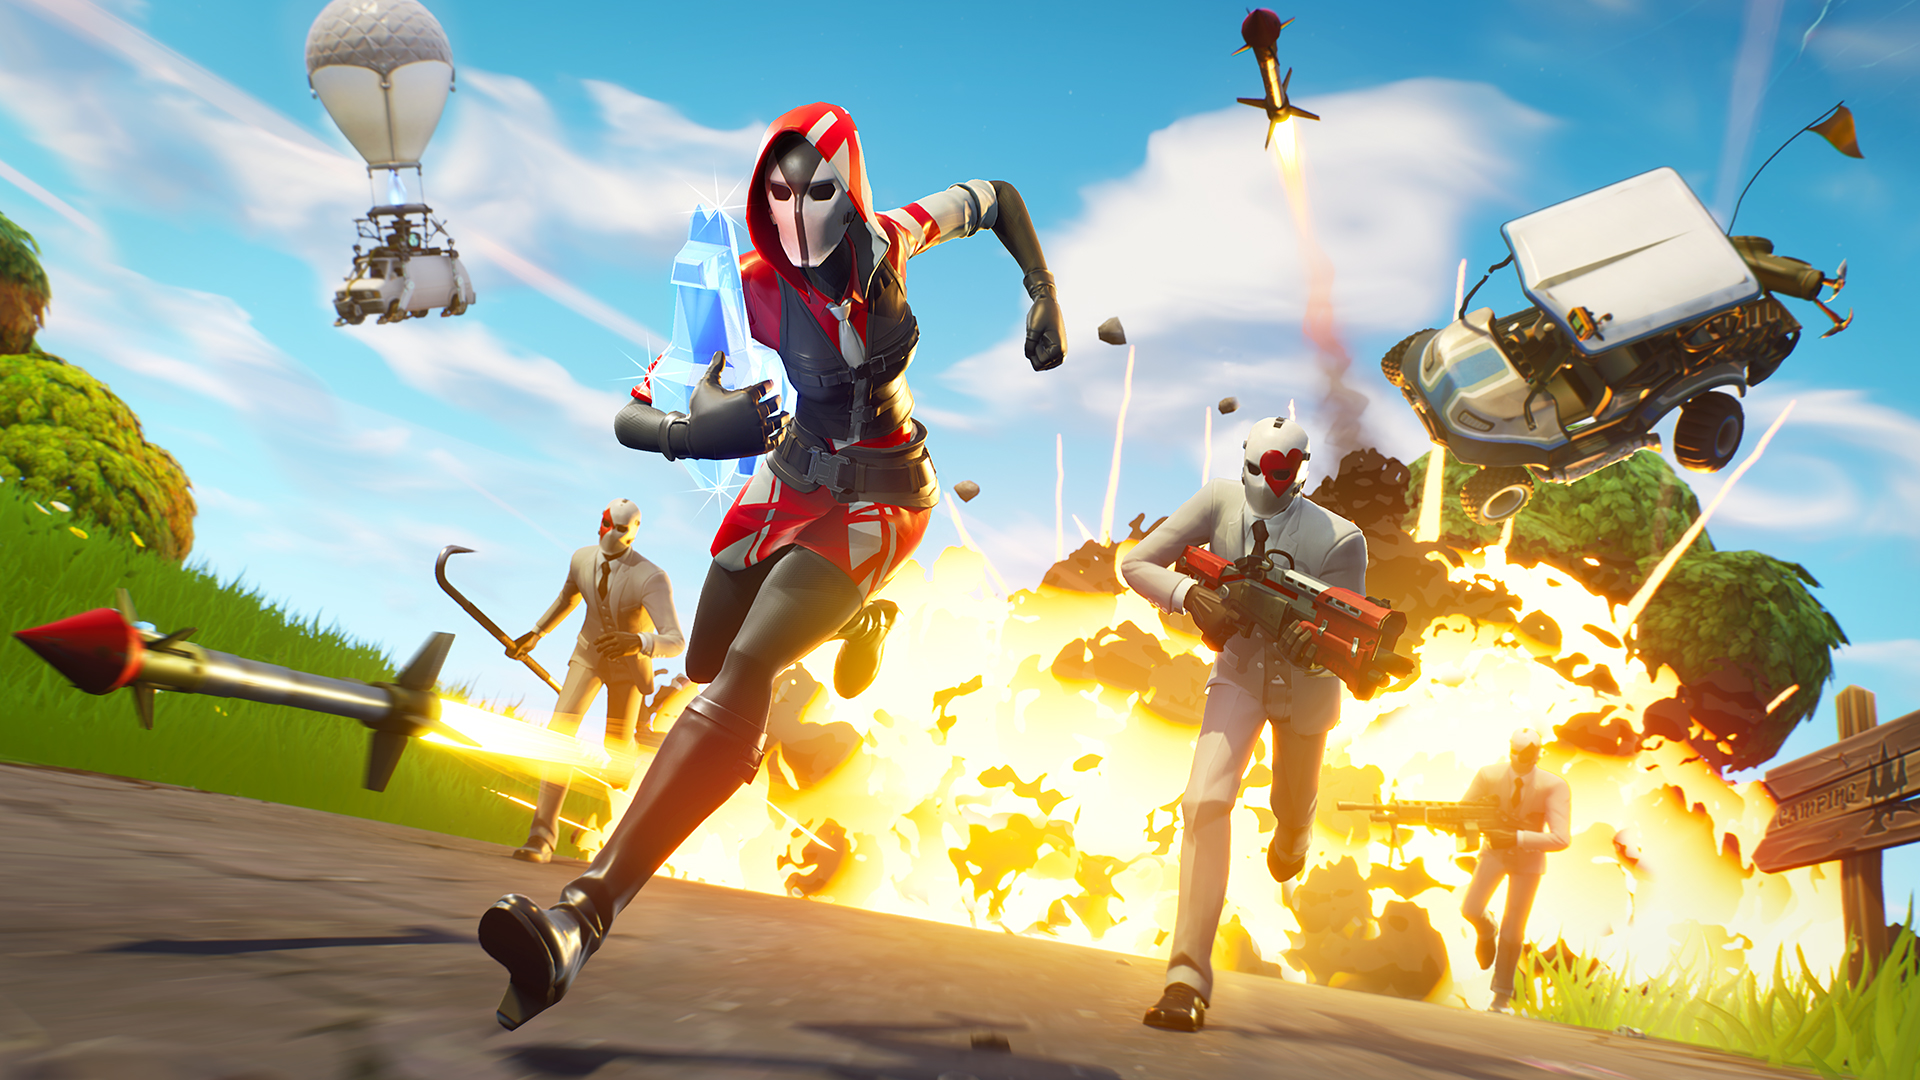 Sometimes a quick restart can fix your lag issues in Fortnite: Battle Royale.